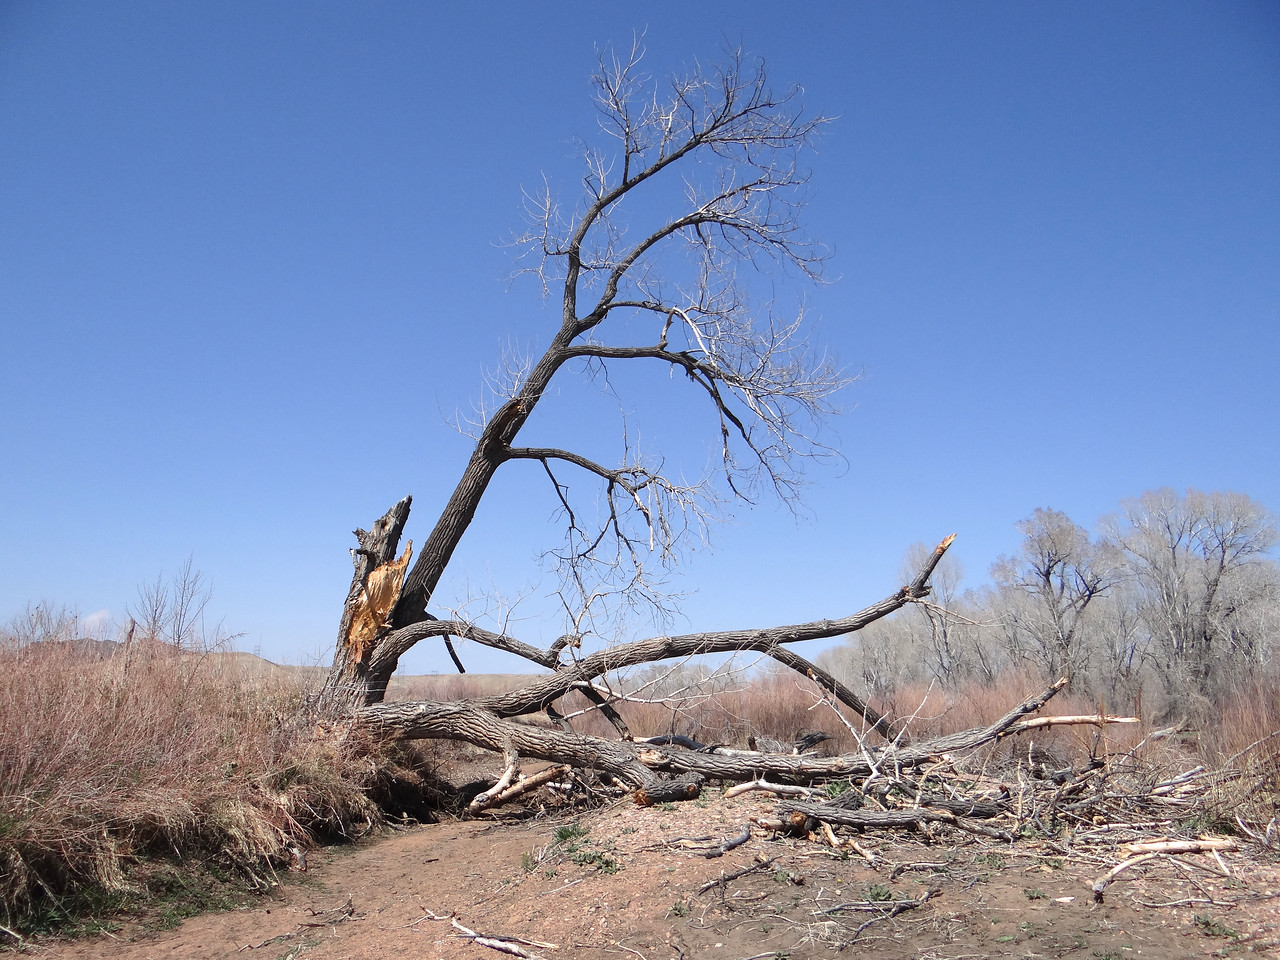 Colorado's high winds often prune cottonwoods